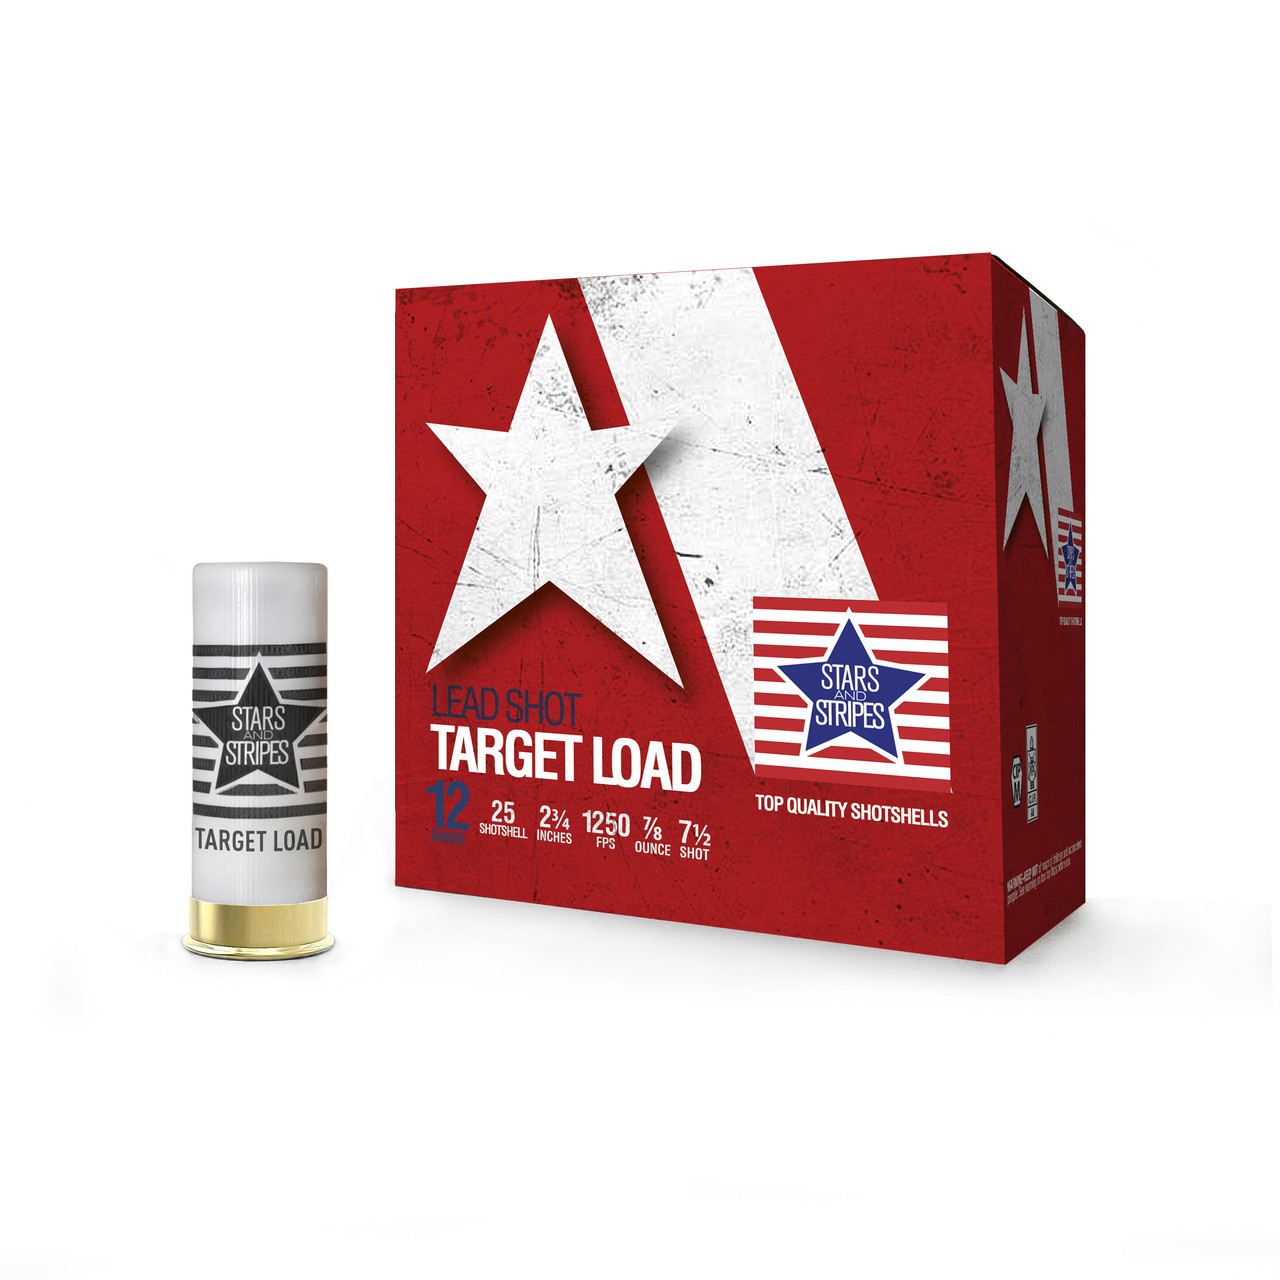 Stars and Stripes 12 Gauge Ammunition Target Loads CT12475 2-3/4